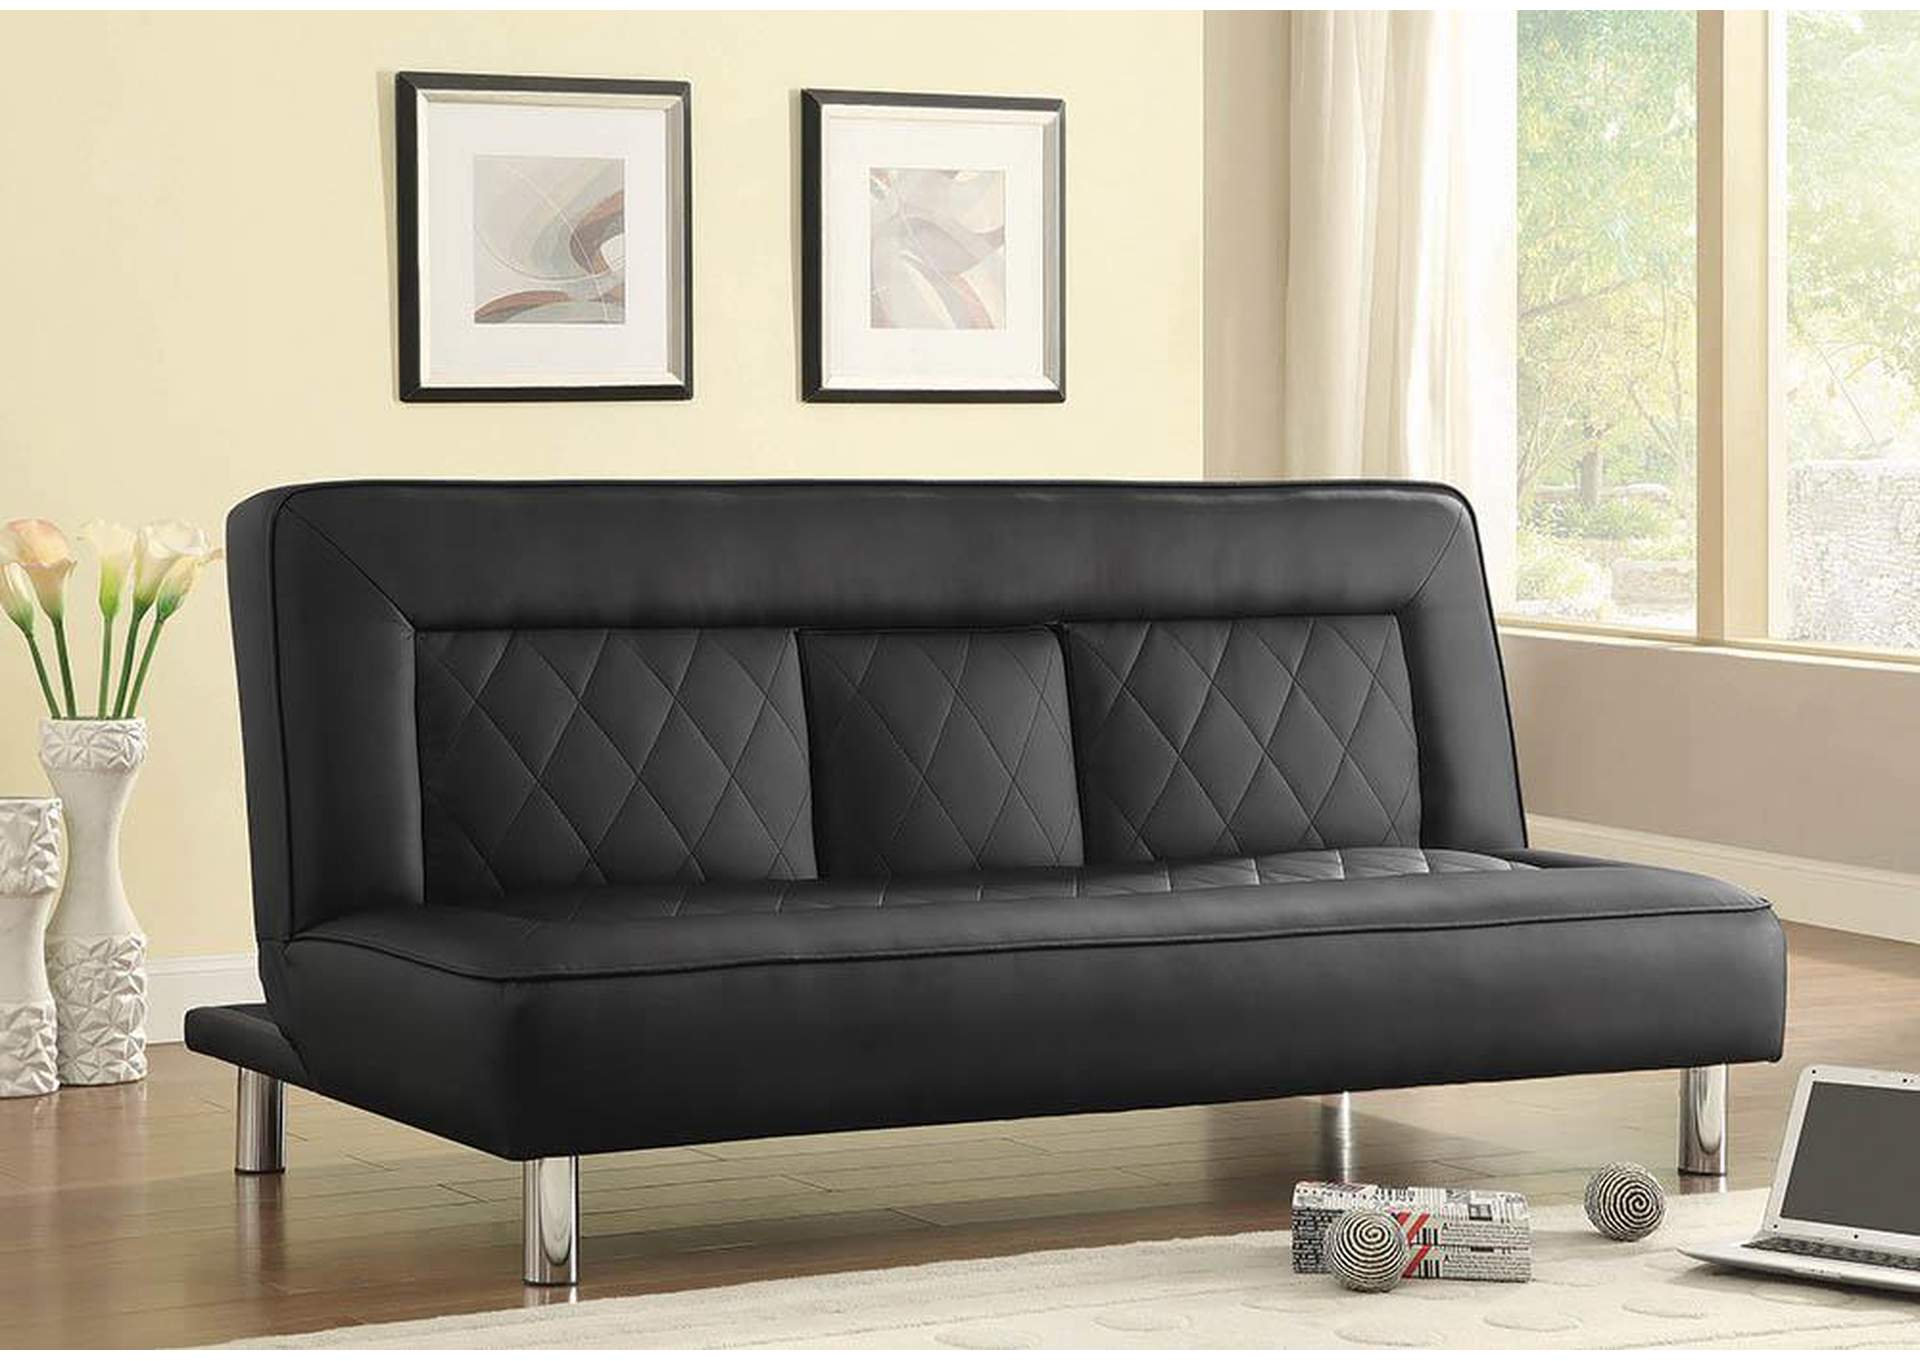 Coaster Furniture Living Room Sofa BedCoaster